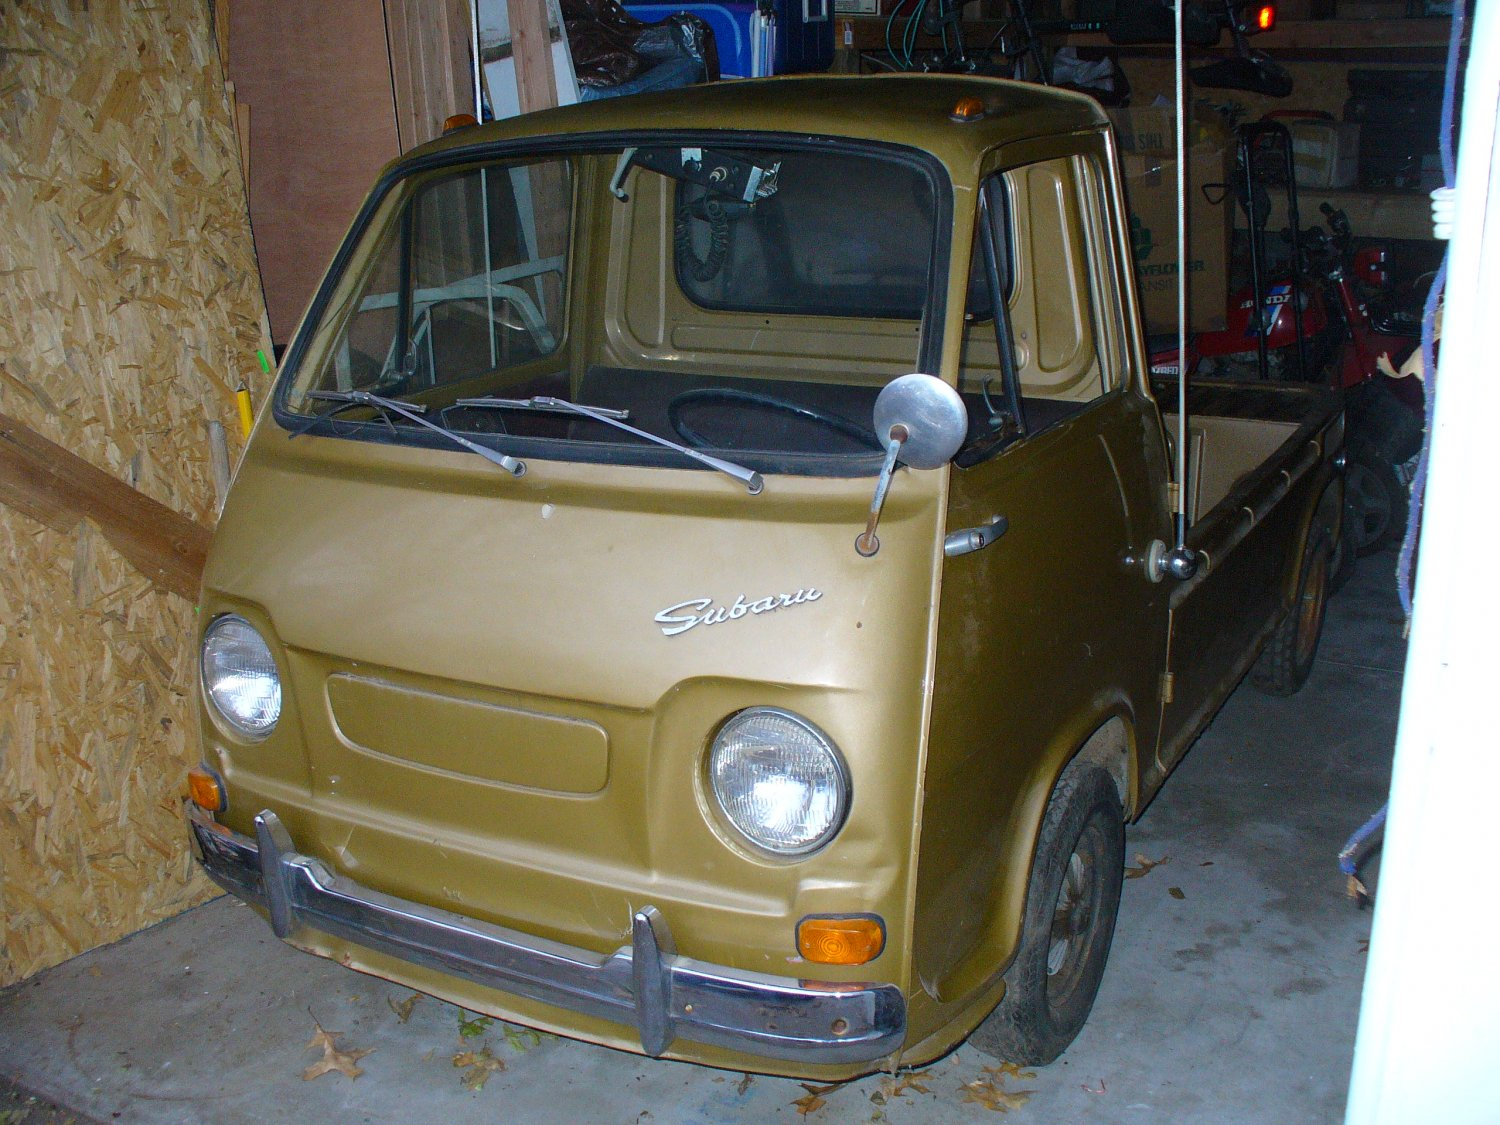 1969 Subaru 360 Pickup truck. A Subaru 360 collectors dream.